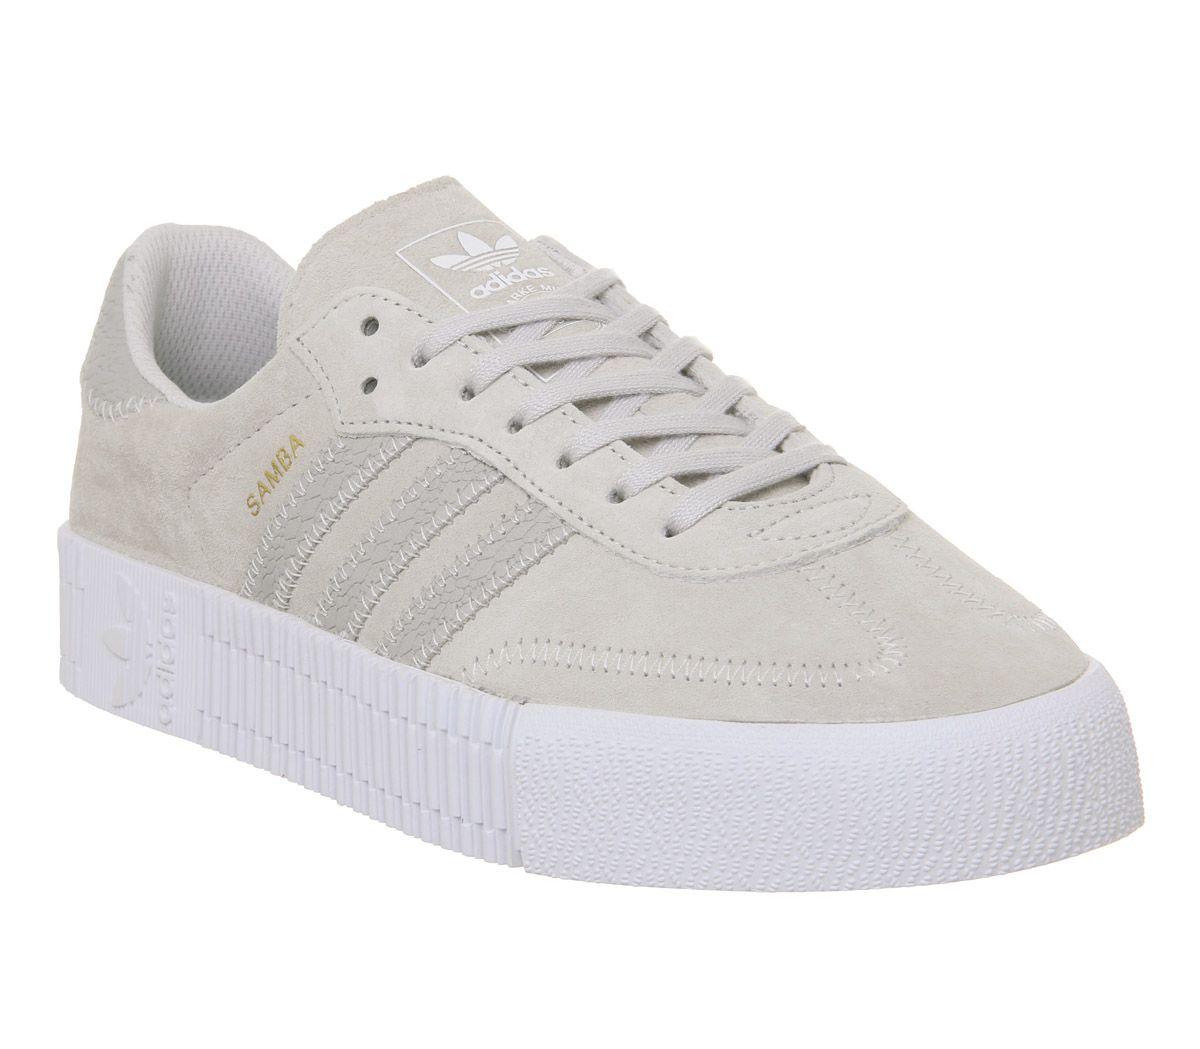 Adidas Samba Rose Trainers Grey One White Hers Trainers